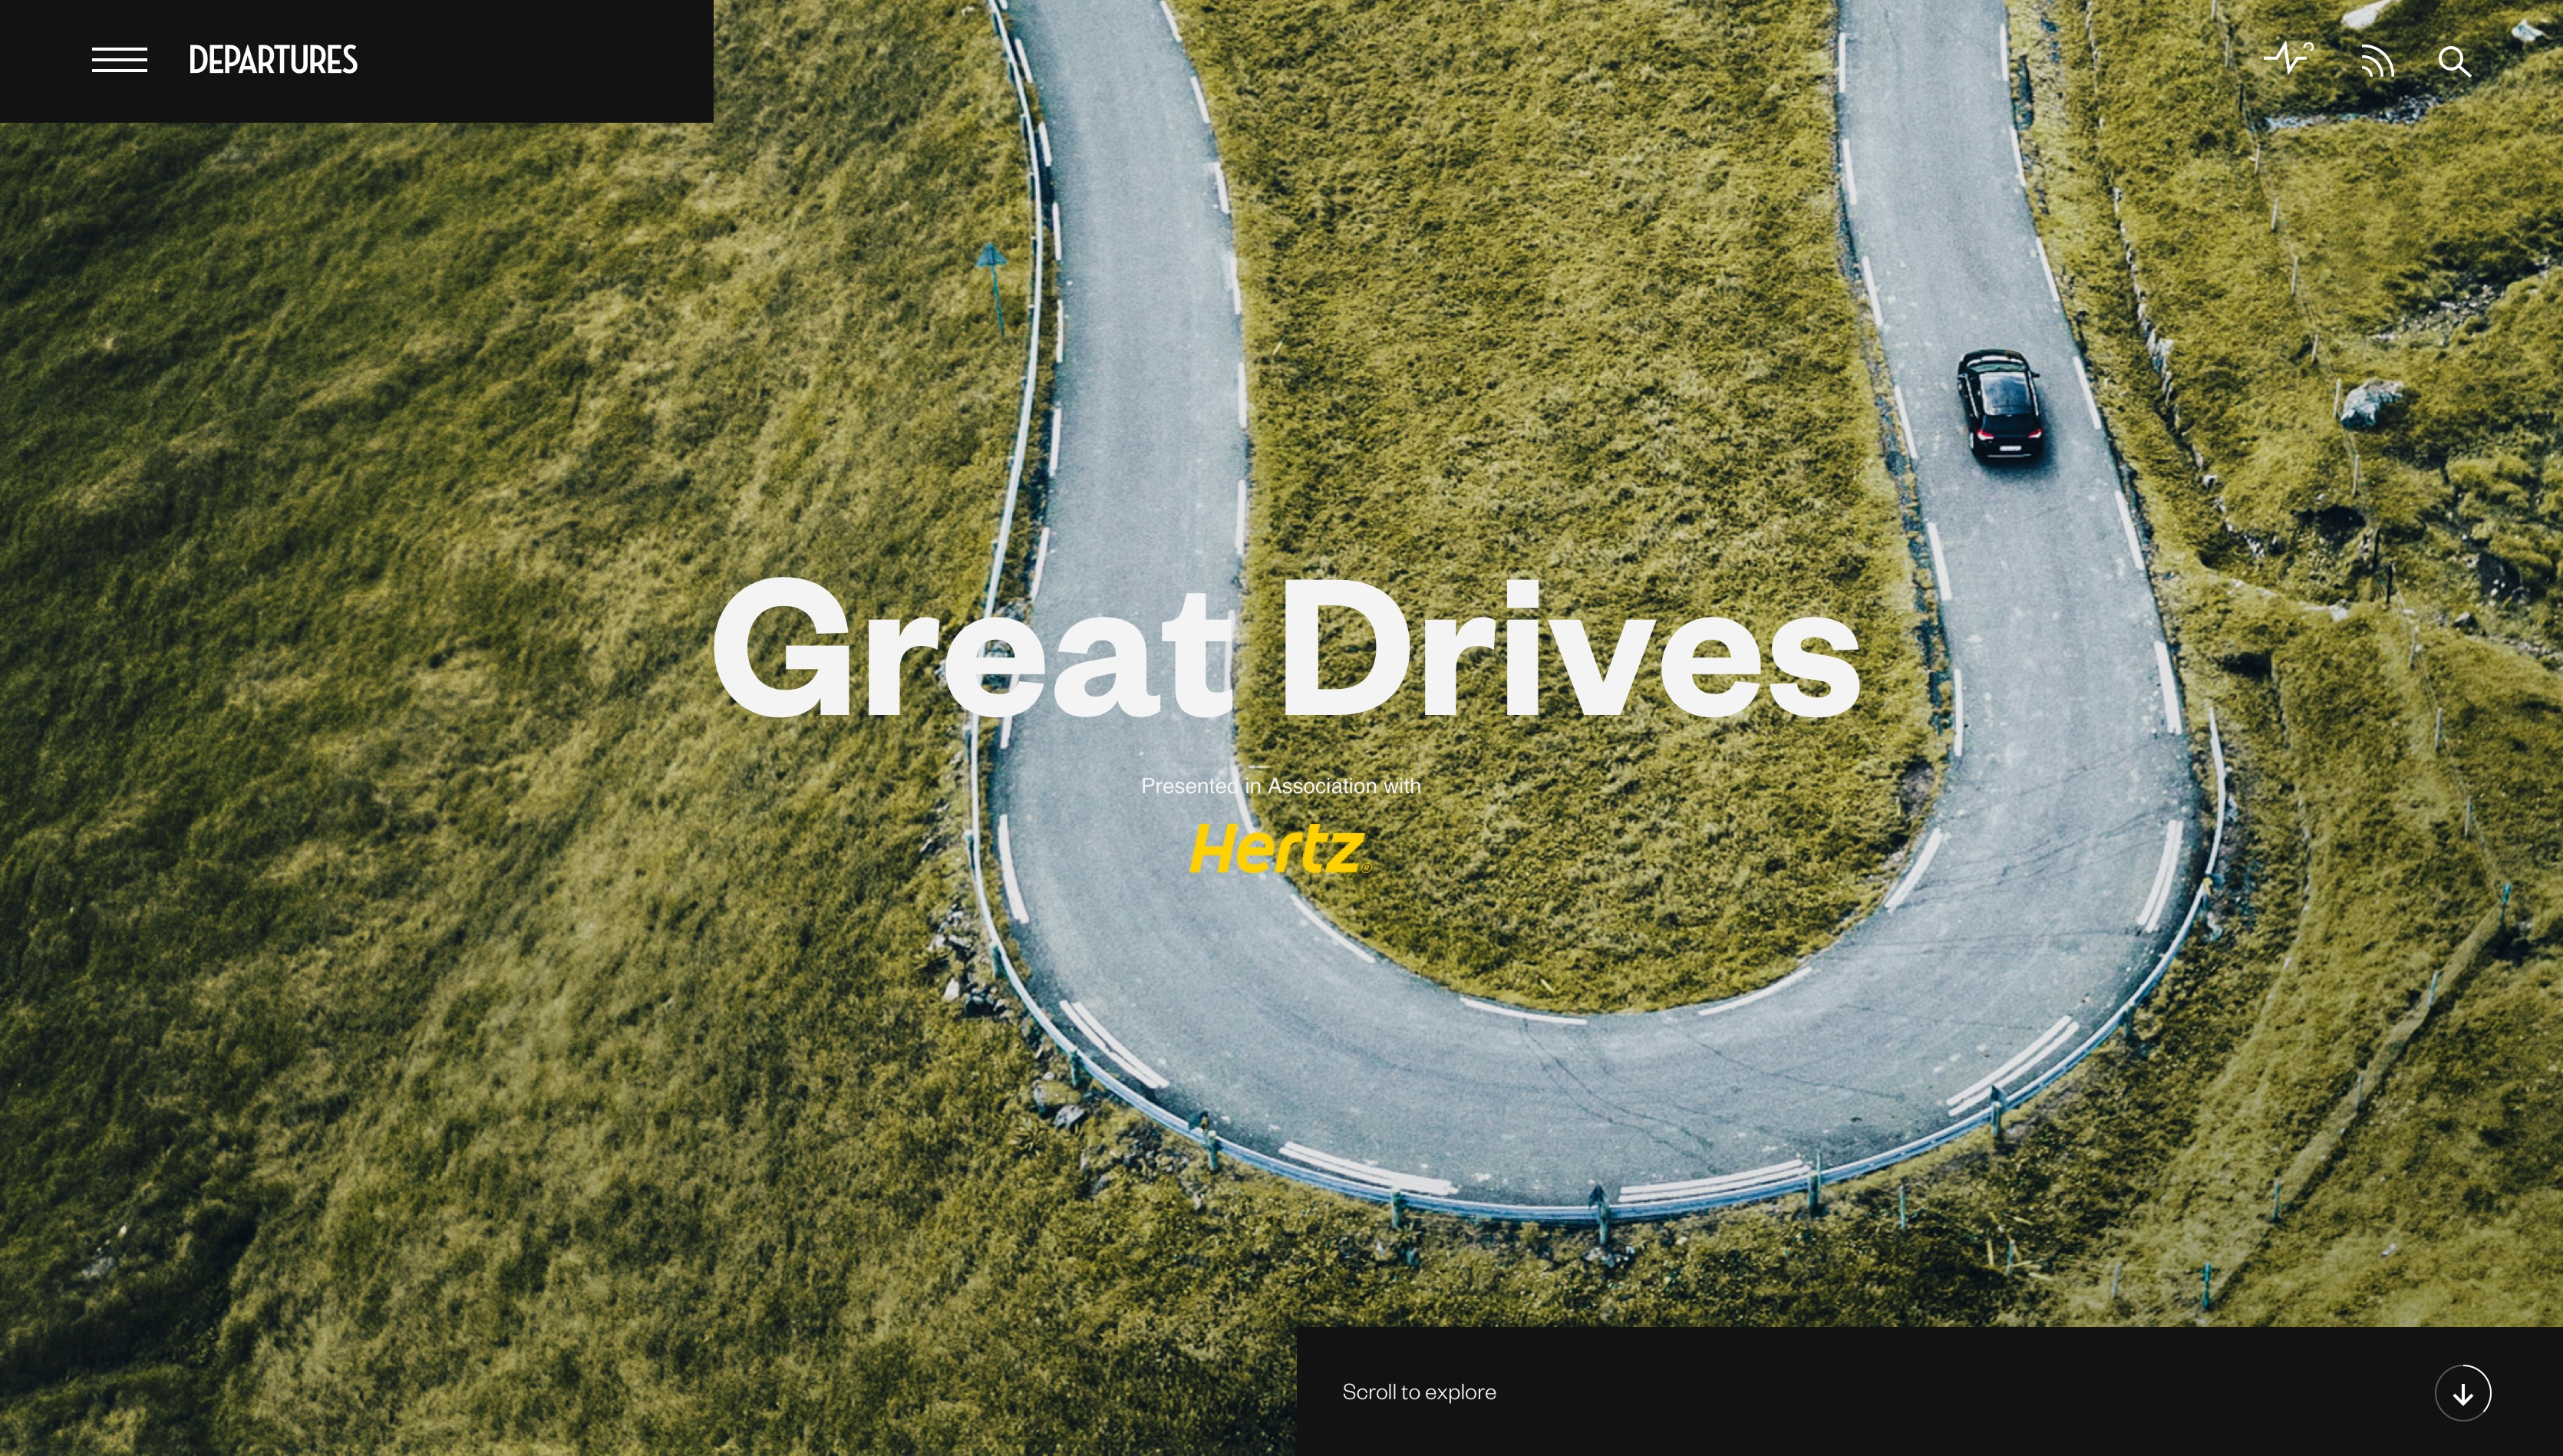 Departures_Greatdrives